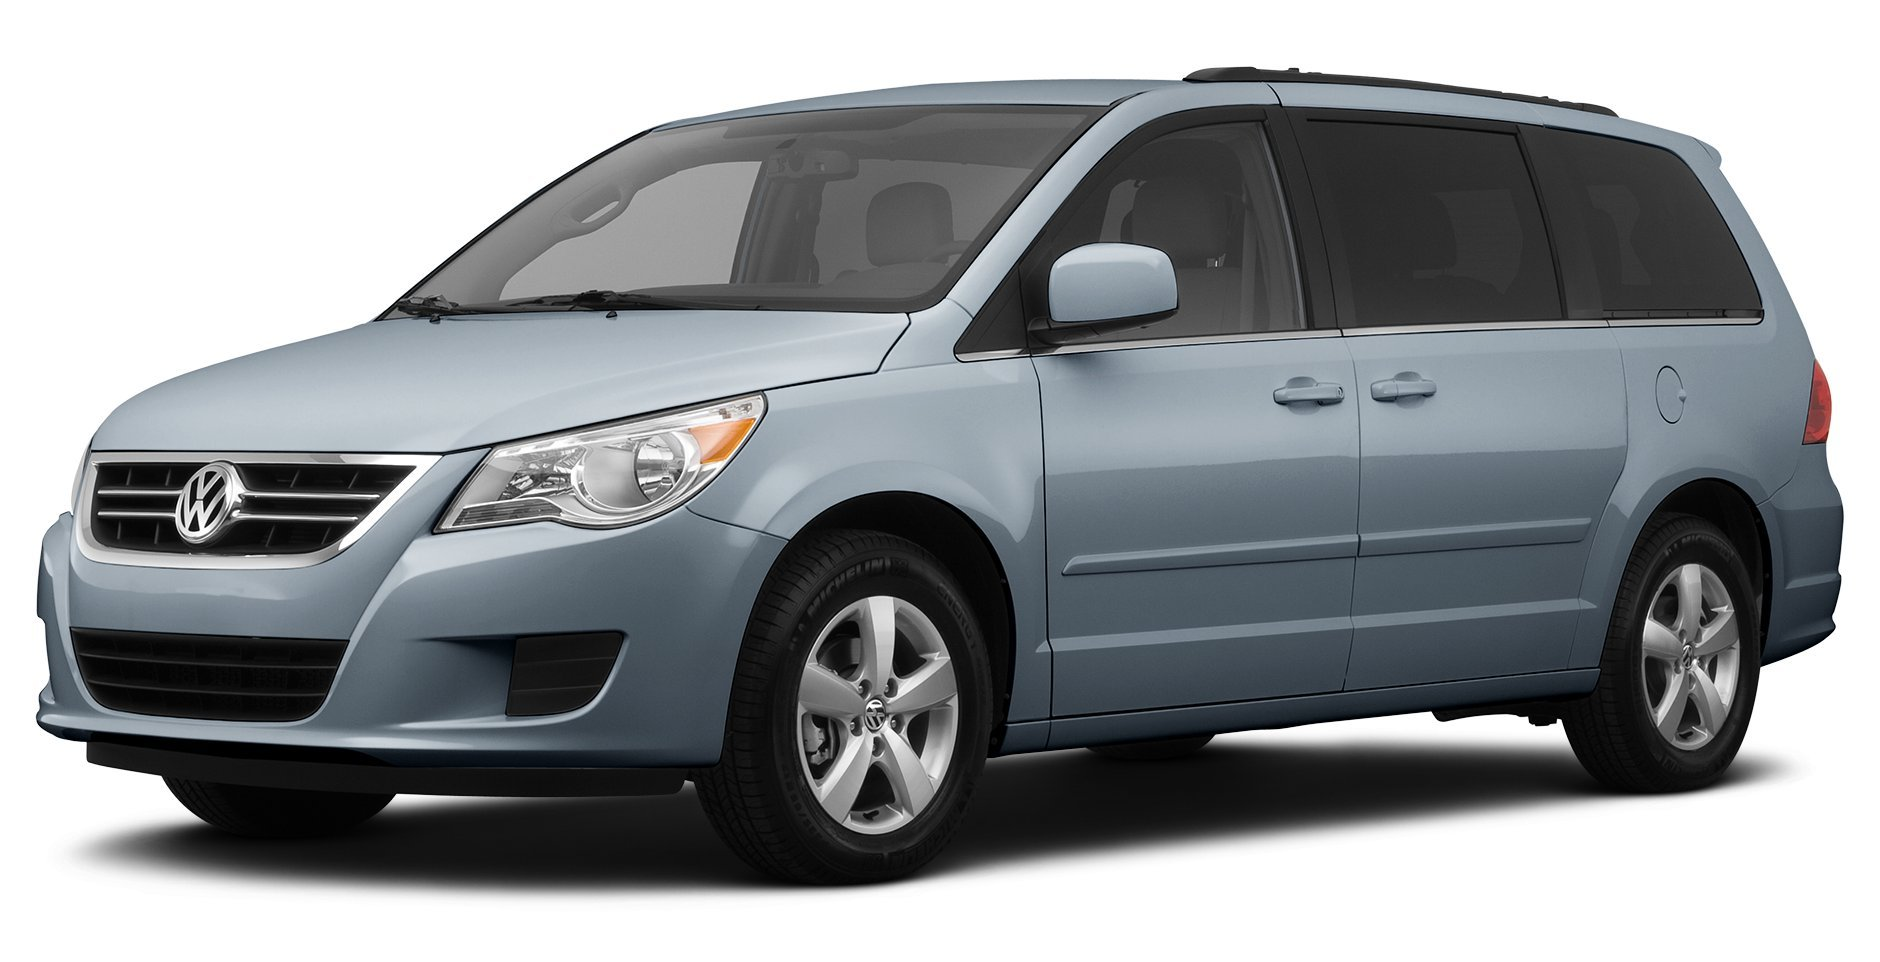 2011 Toyota Sienna Recalled For Brakelight Switch Issue